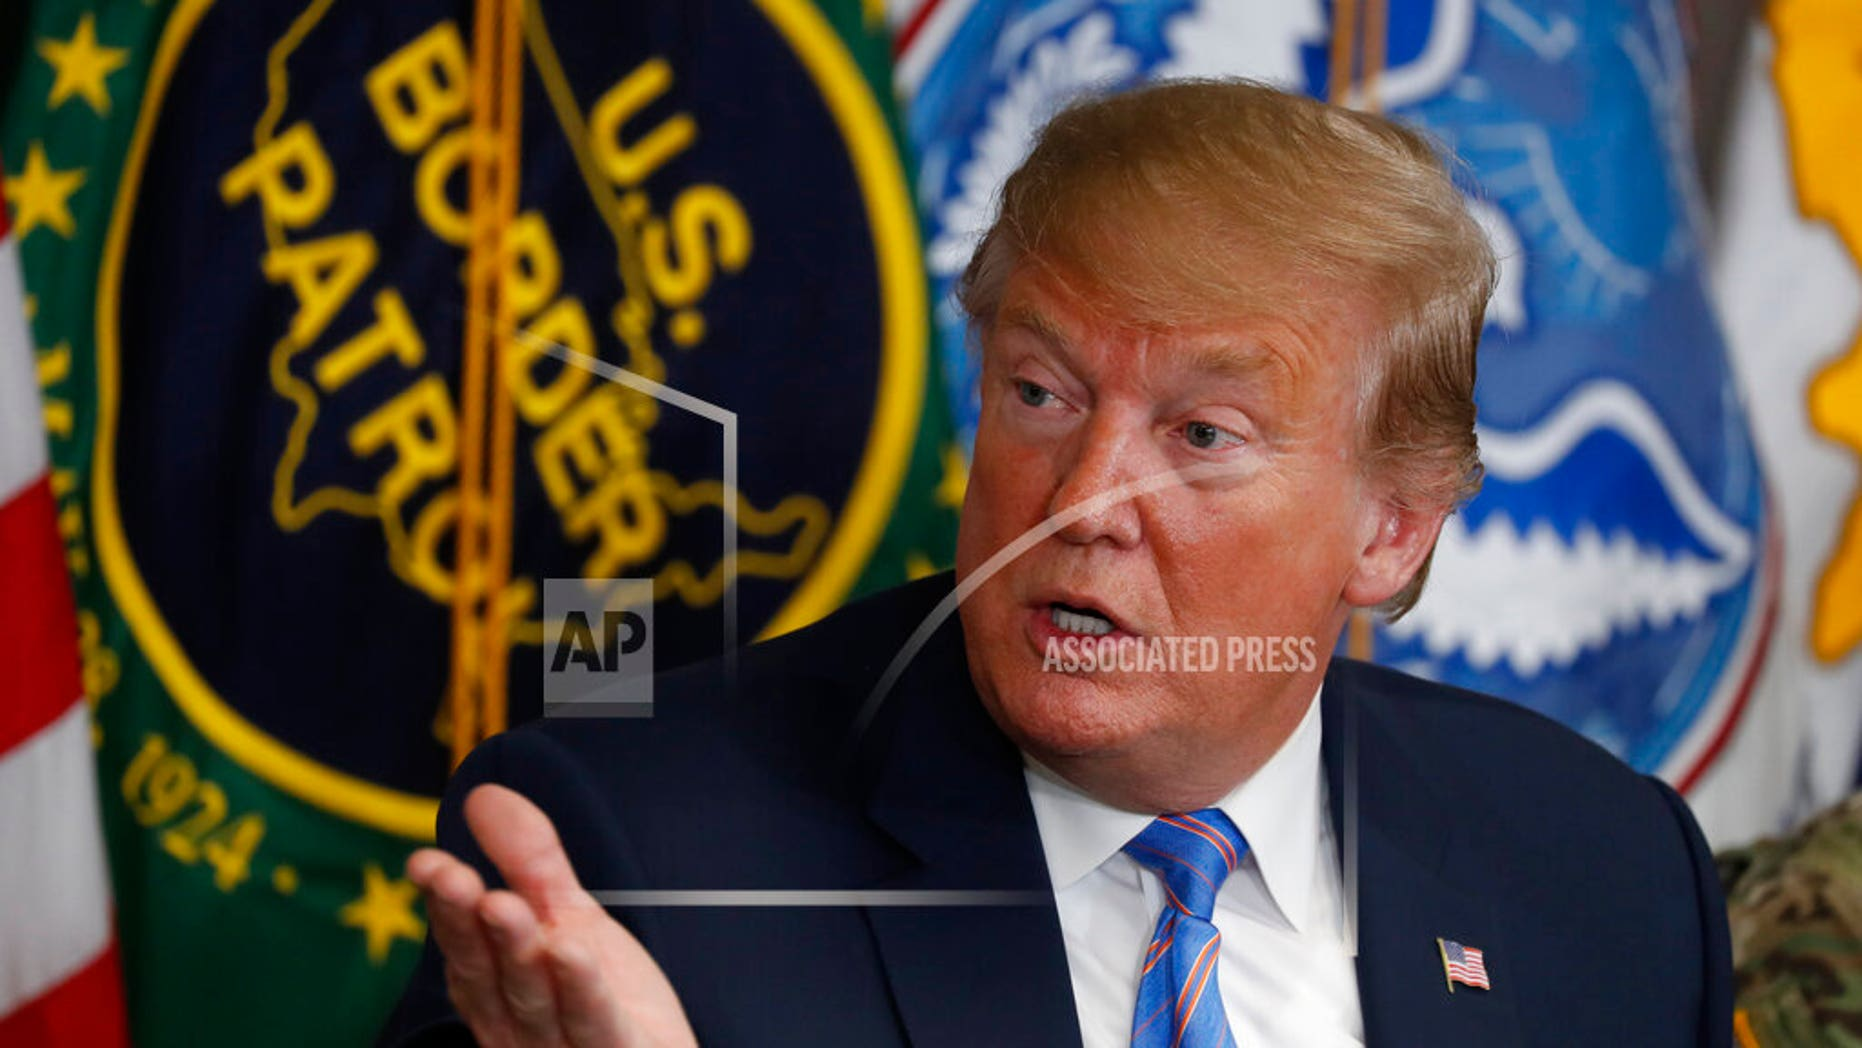 In this photo on April 5, President Donald Trump participates in a round table on immigration and border security at the Calexico station of the US border police in Calexico, California. Trump said on Friday